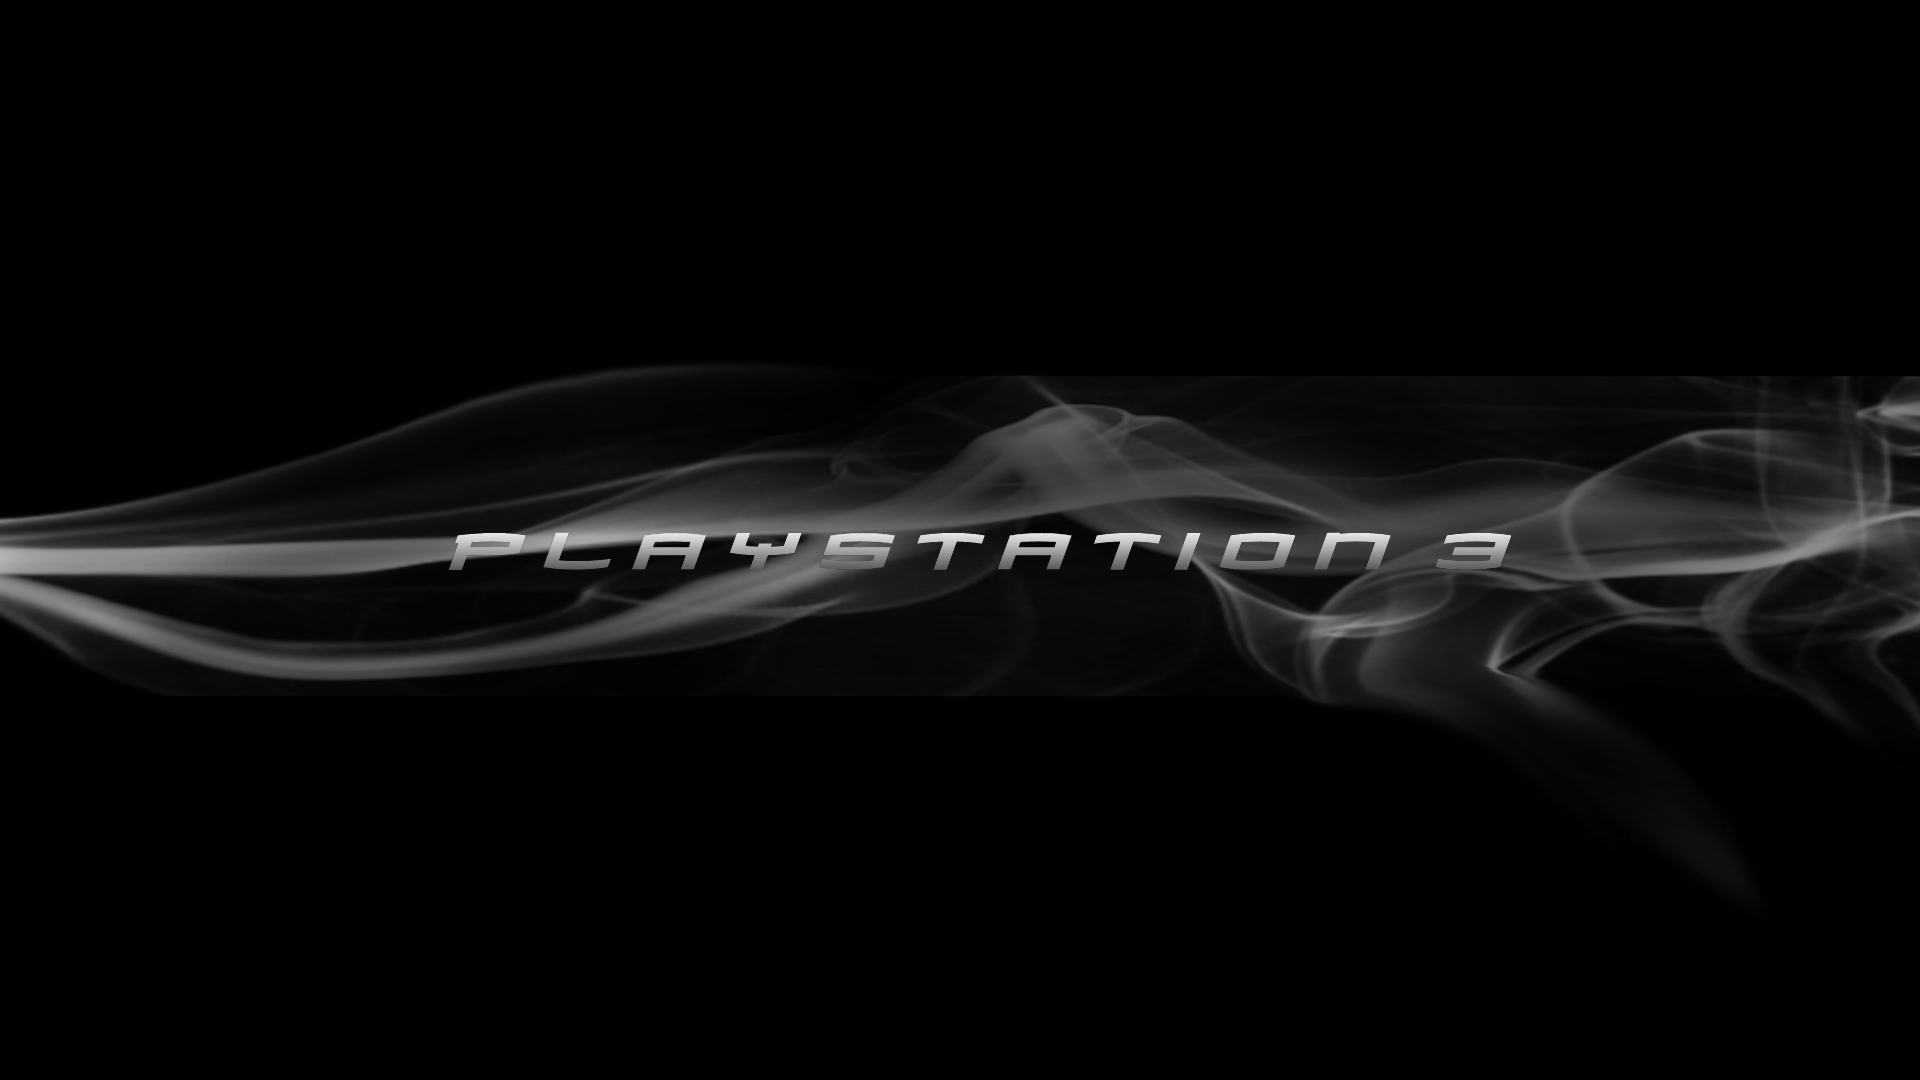 PlayStation 3 - Smoke Logo Wallpapers